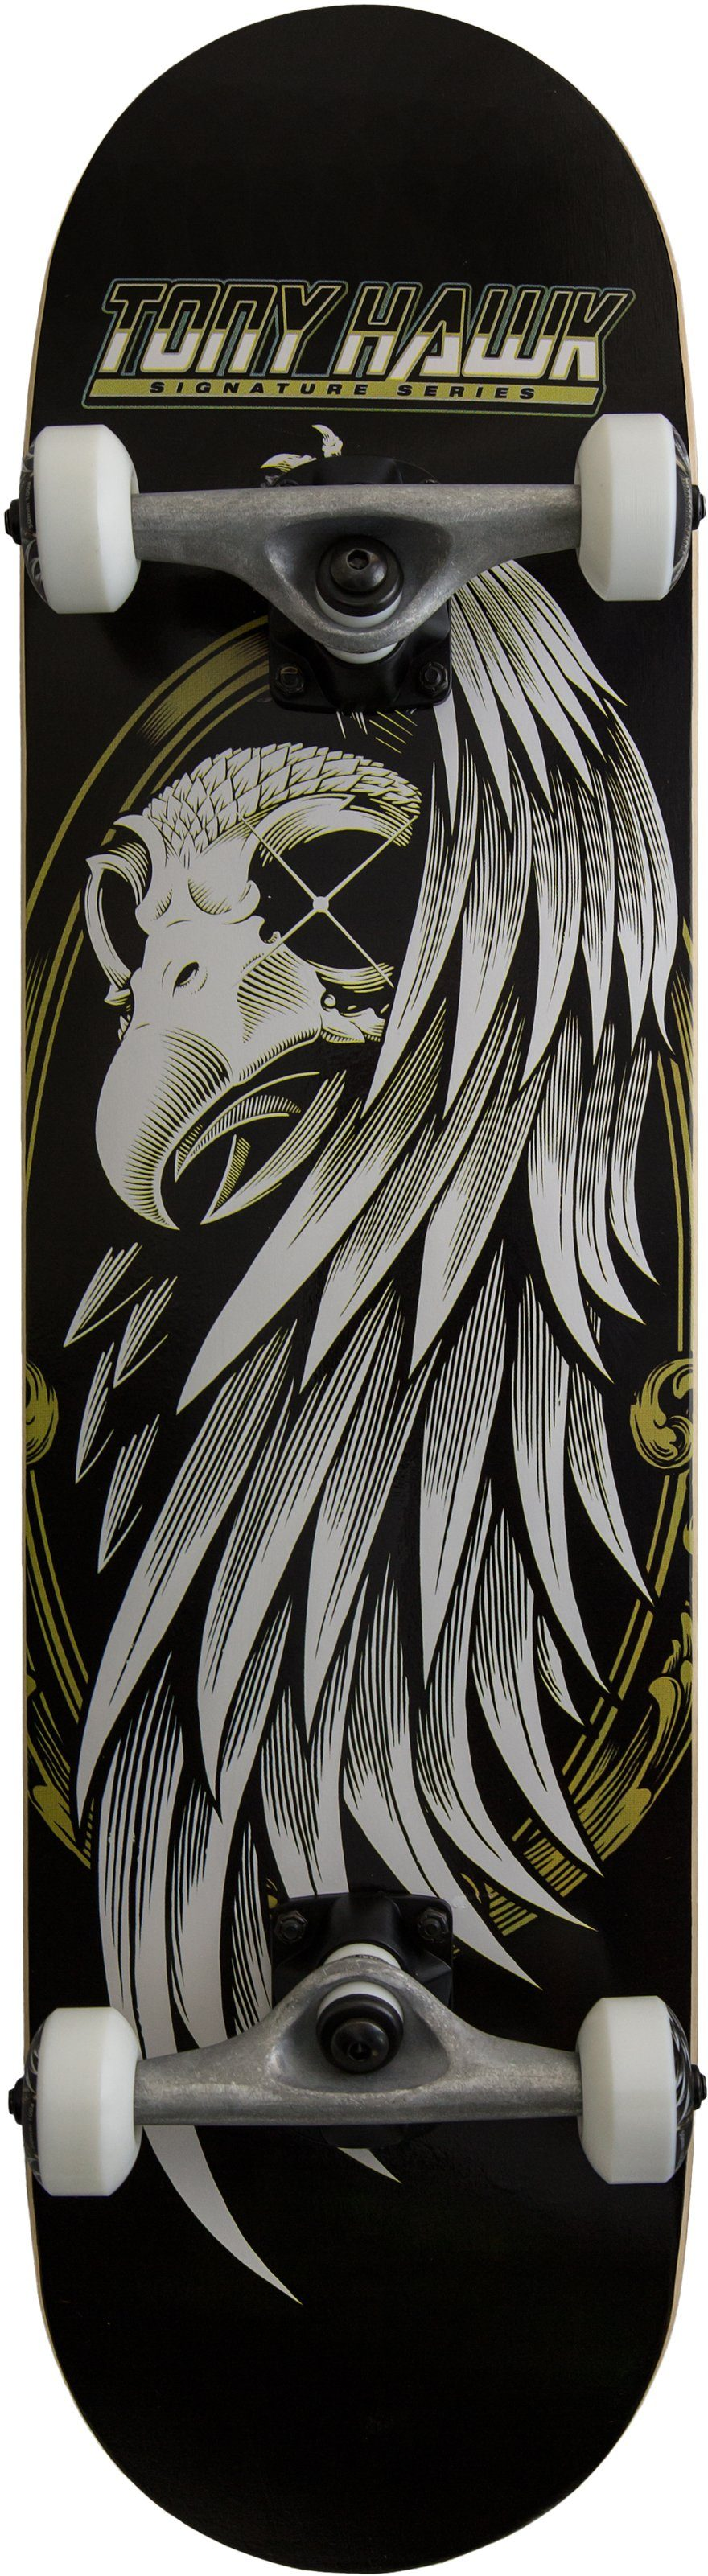 Tony Hawk Skateboard, »Feathered«